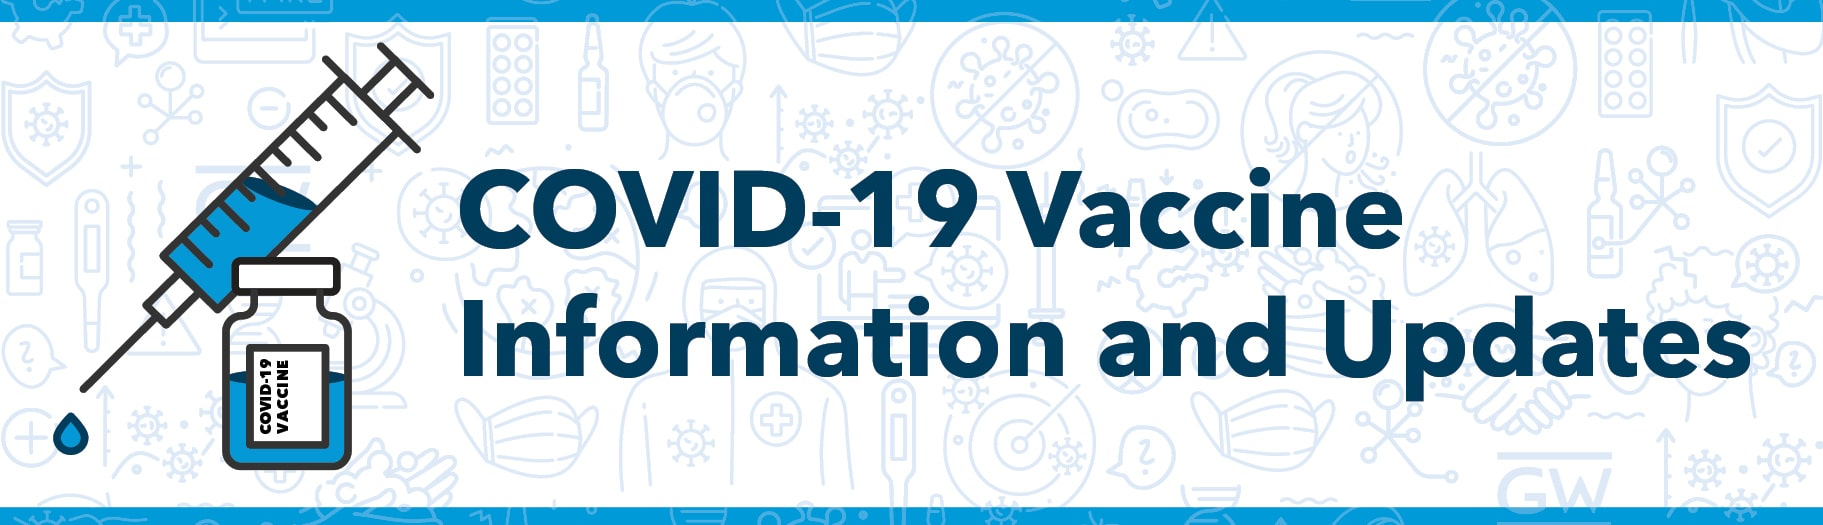 COVID-19 Vaccine Information & Updates